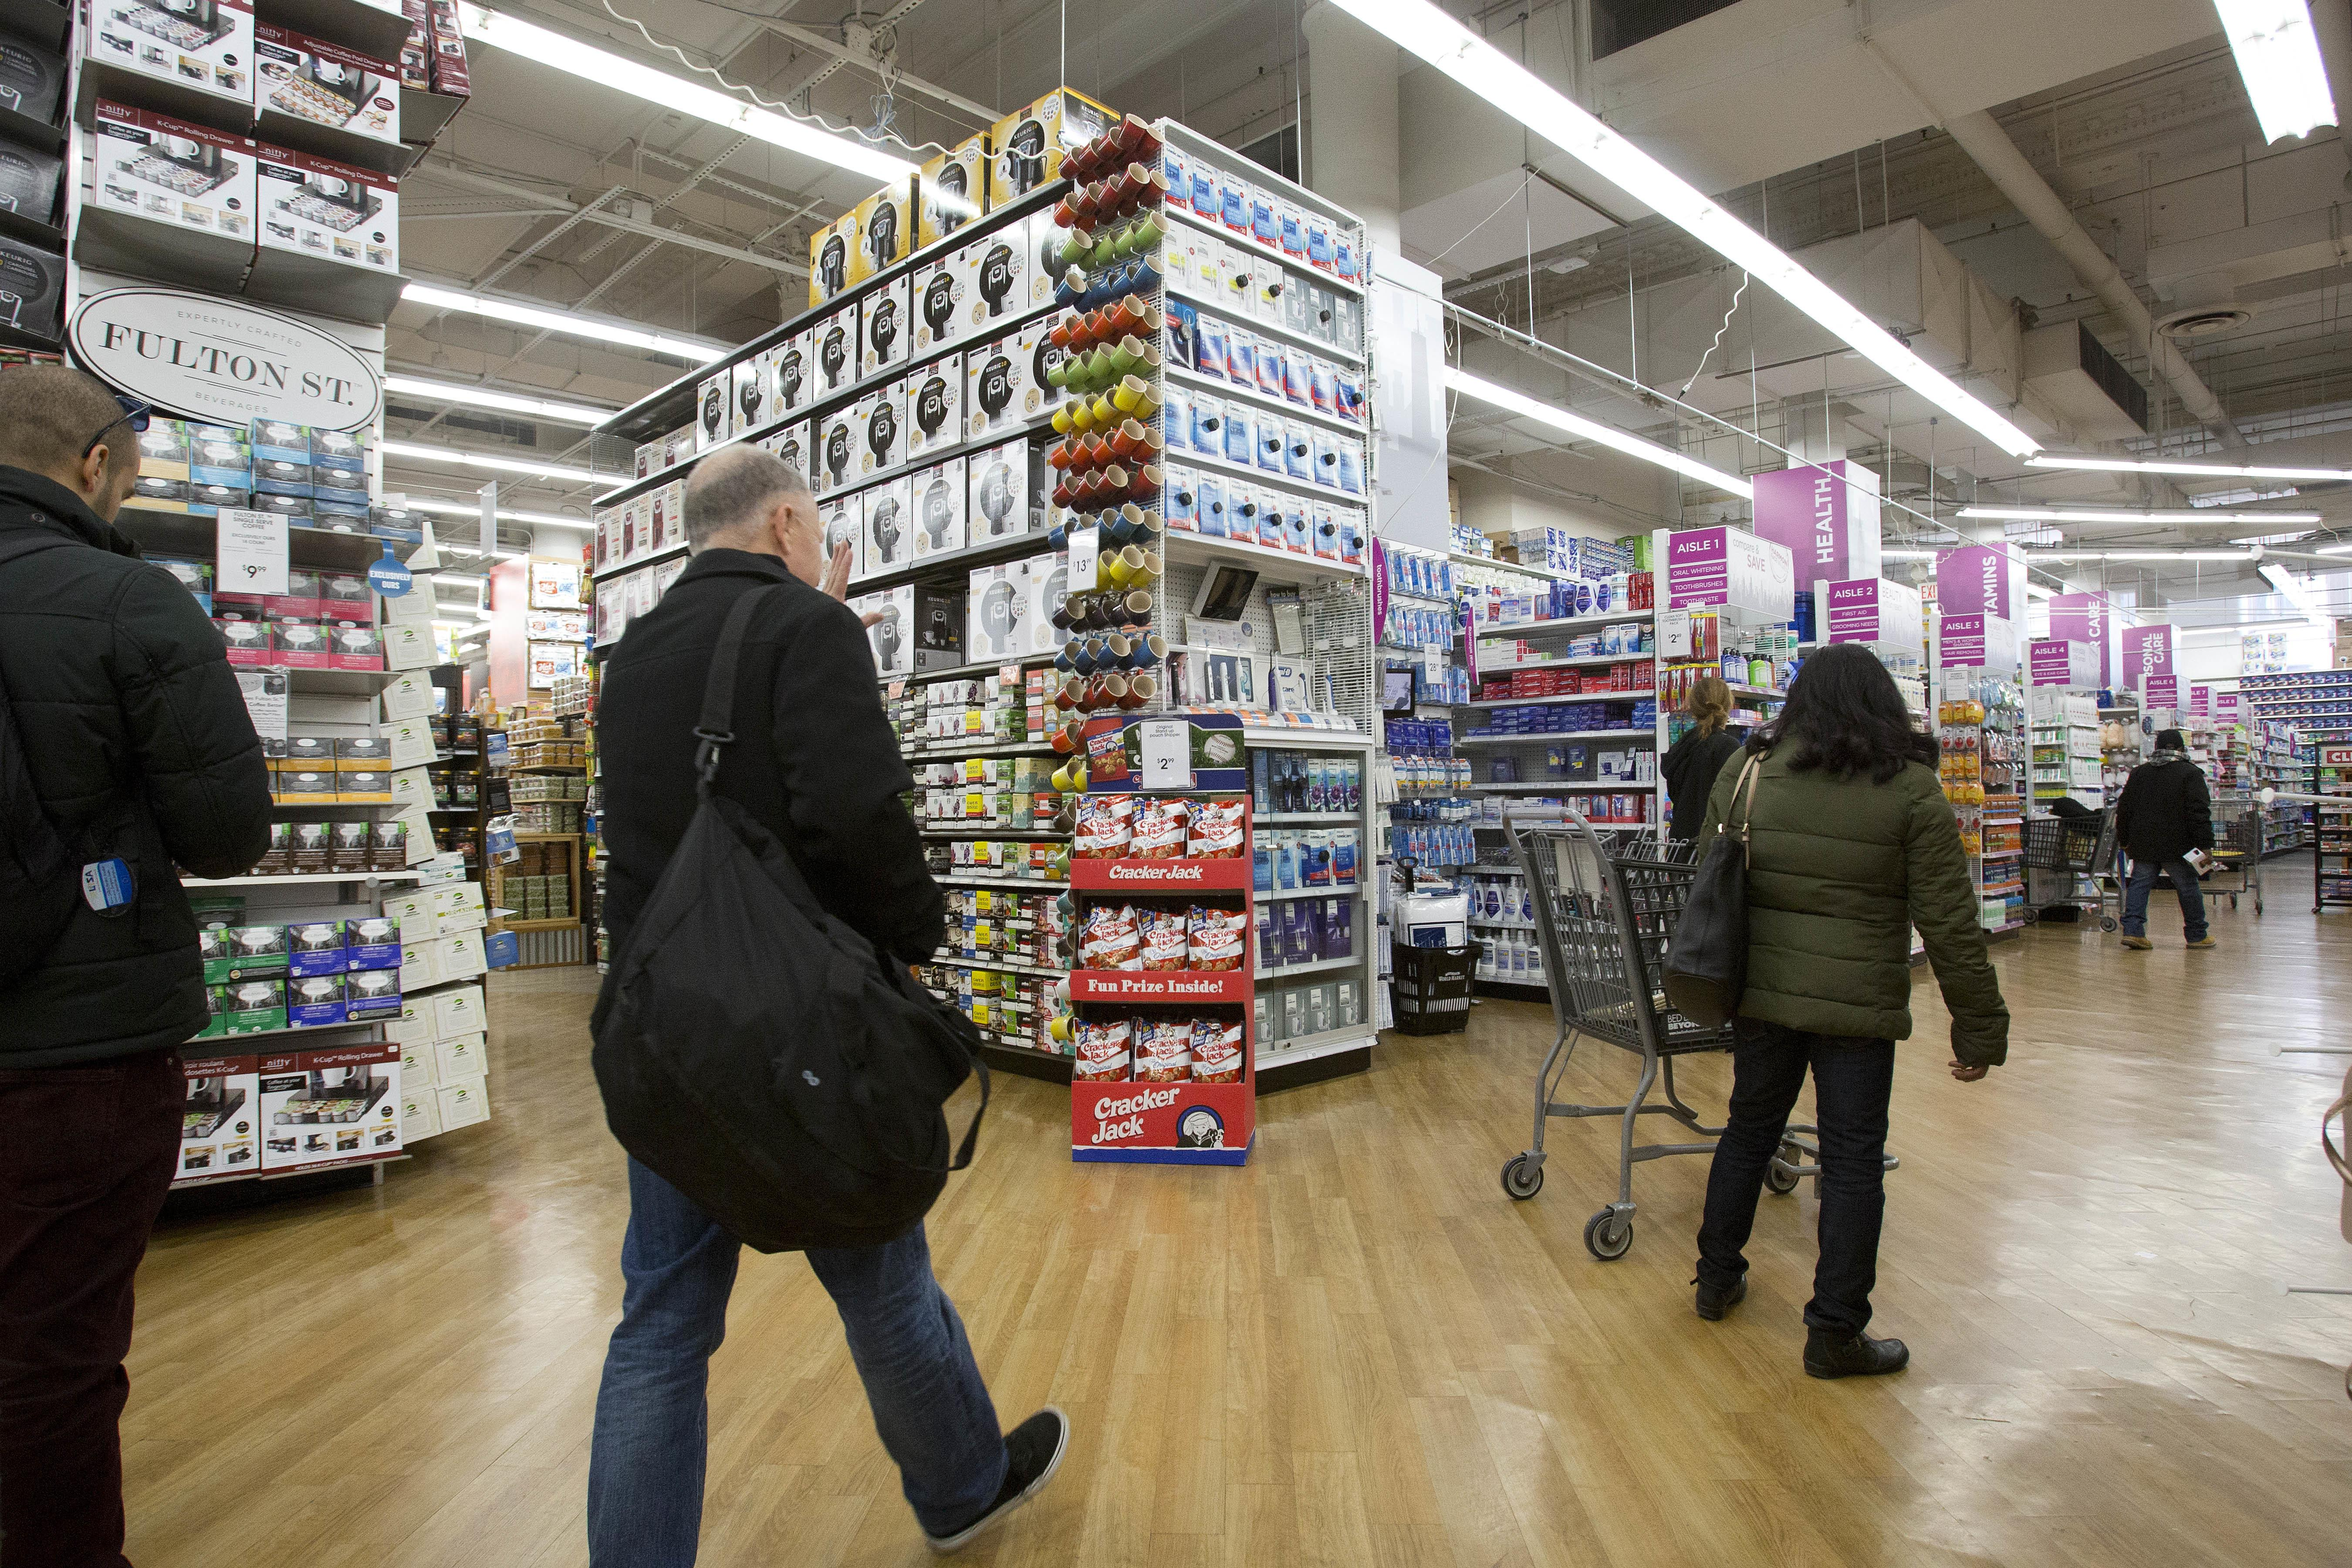 Inside bed bath and beyond - As Online Shopping Intensifies Outlook Dims For Mall Stores The Spokesman Review